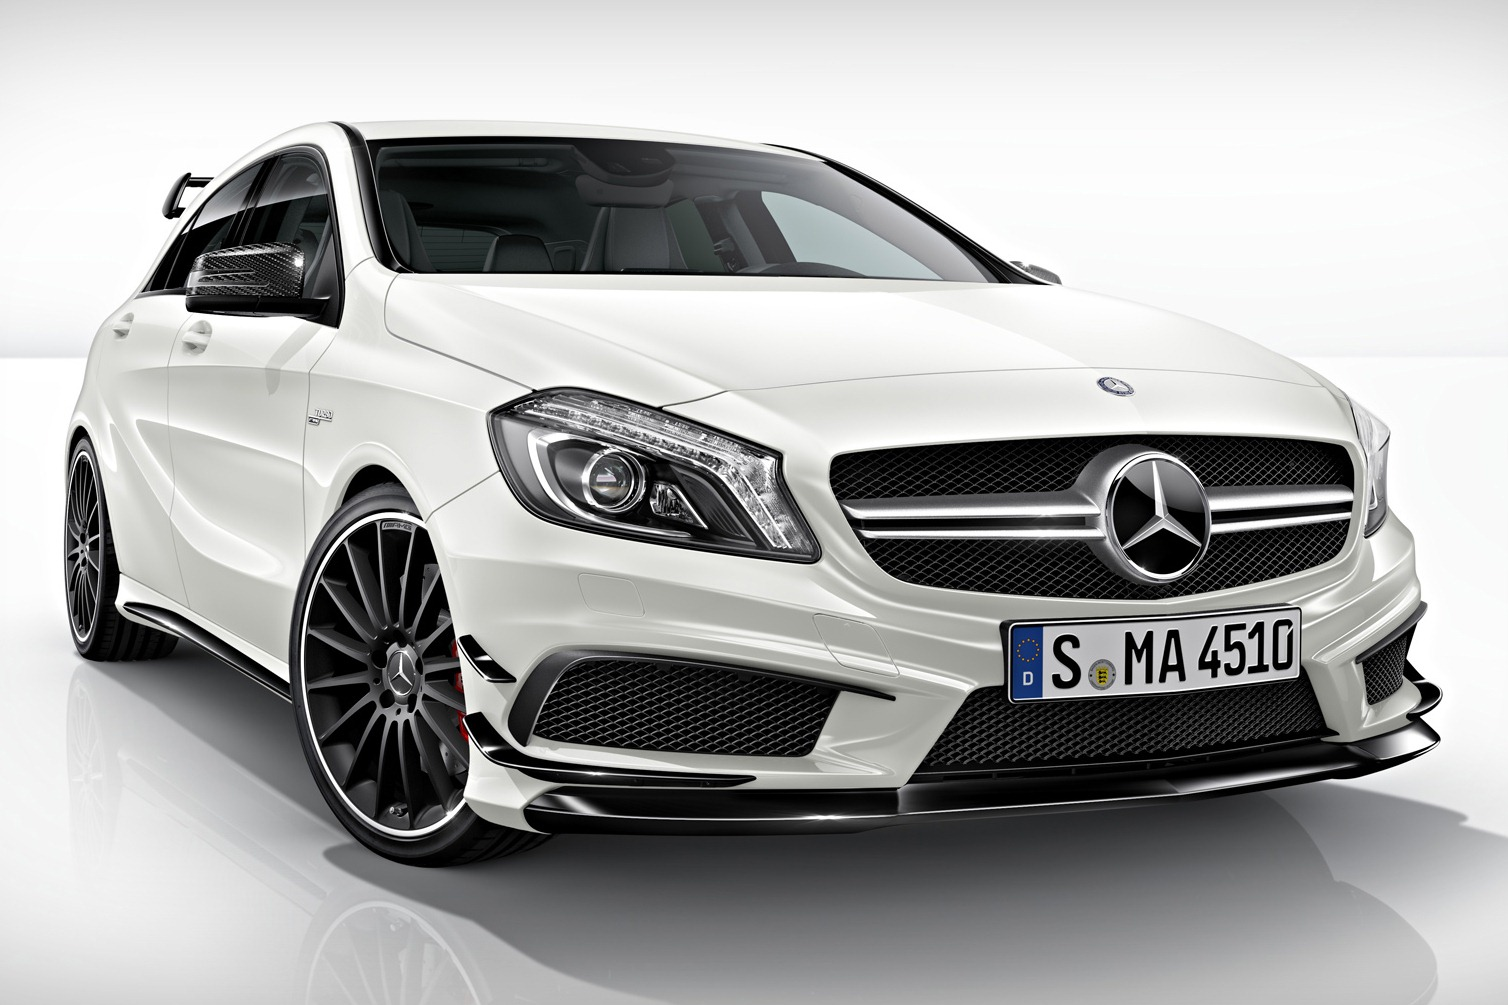 2013 mercedes benz a45 amg revealed autocar news for Mercedes benz a45 amg